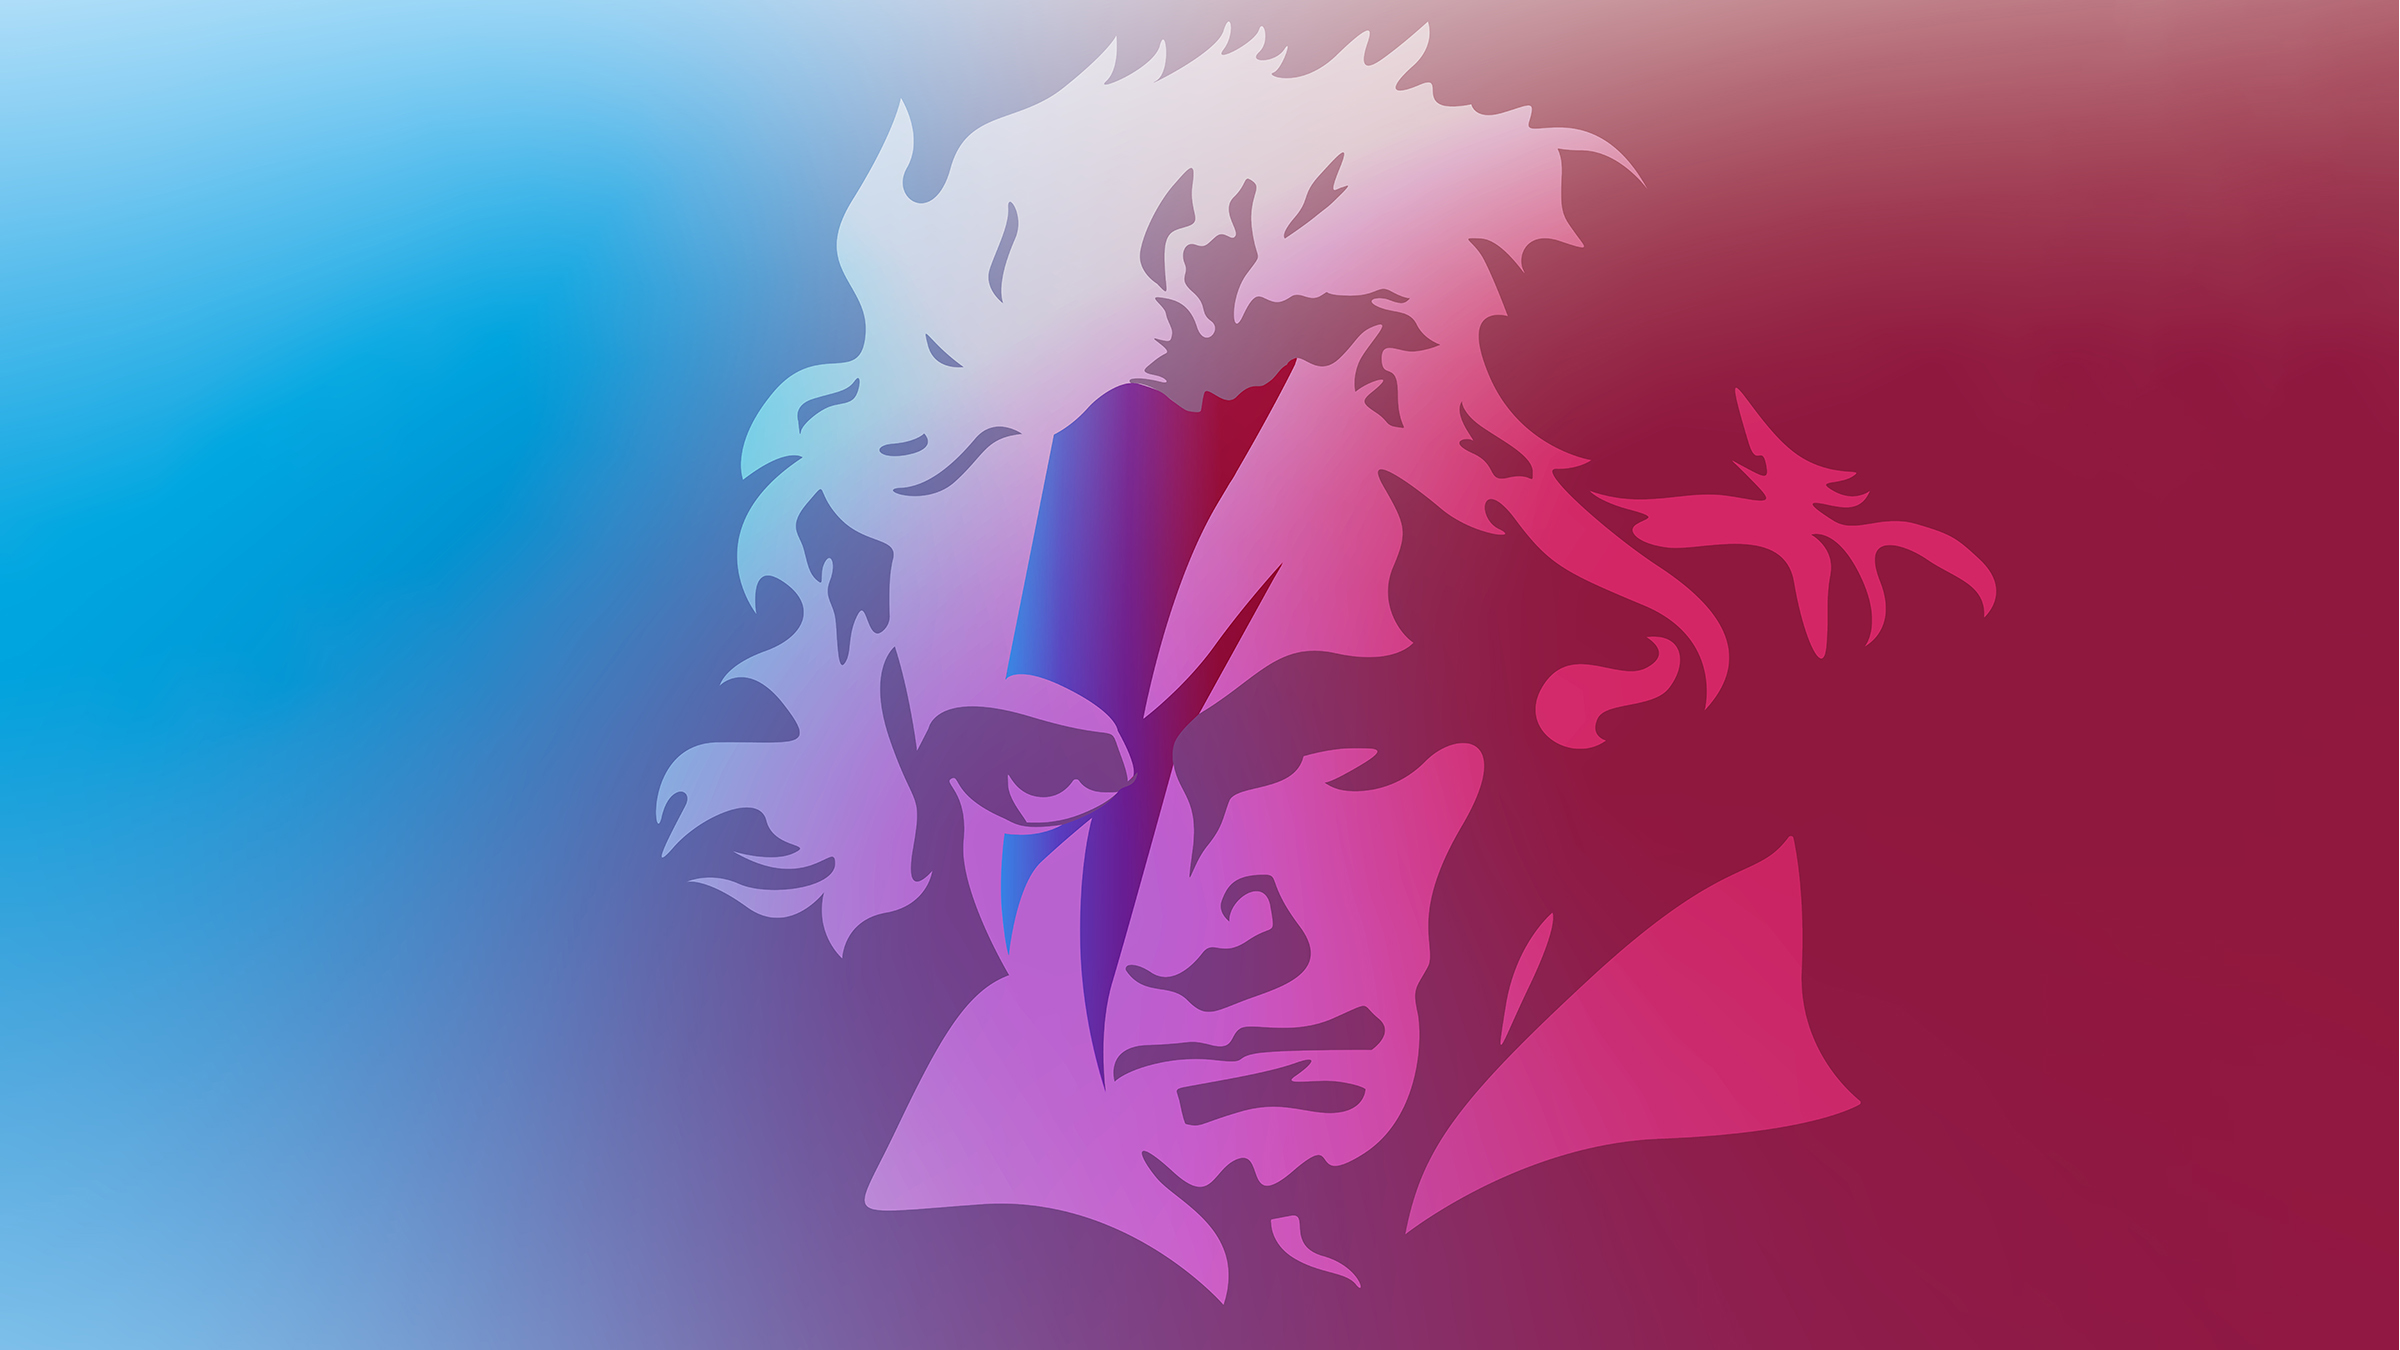 From Beethoven to Bowie: your gift for the holidays!